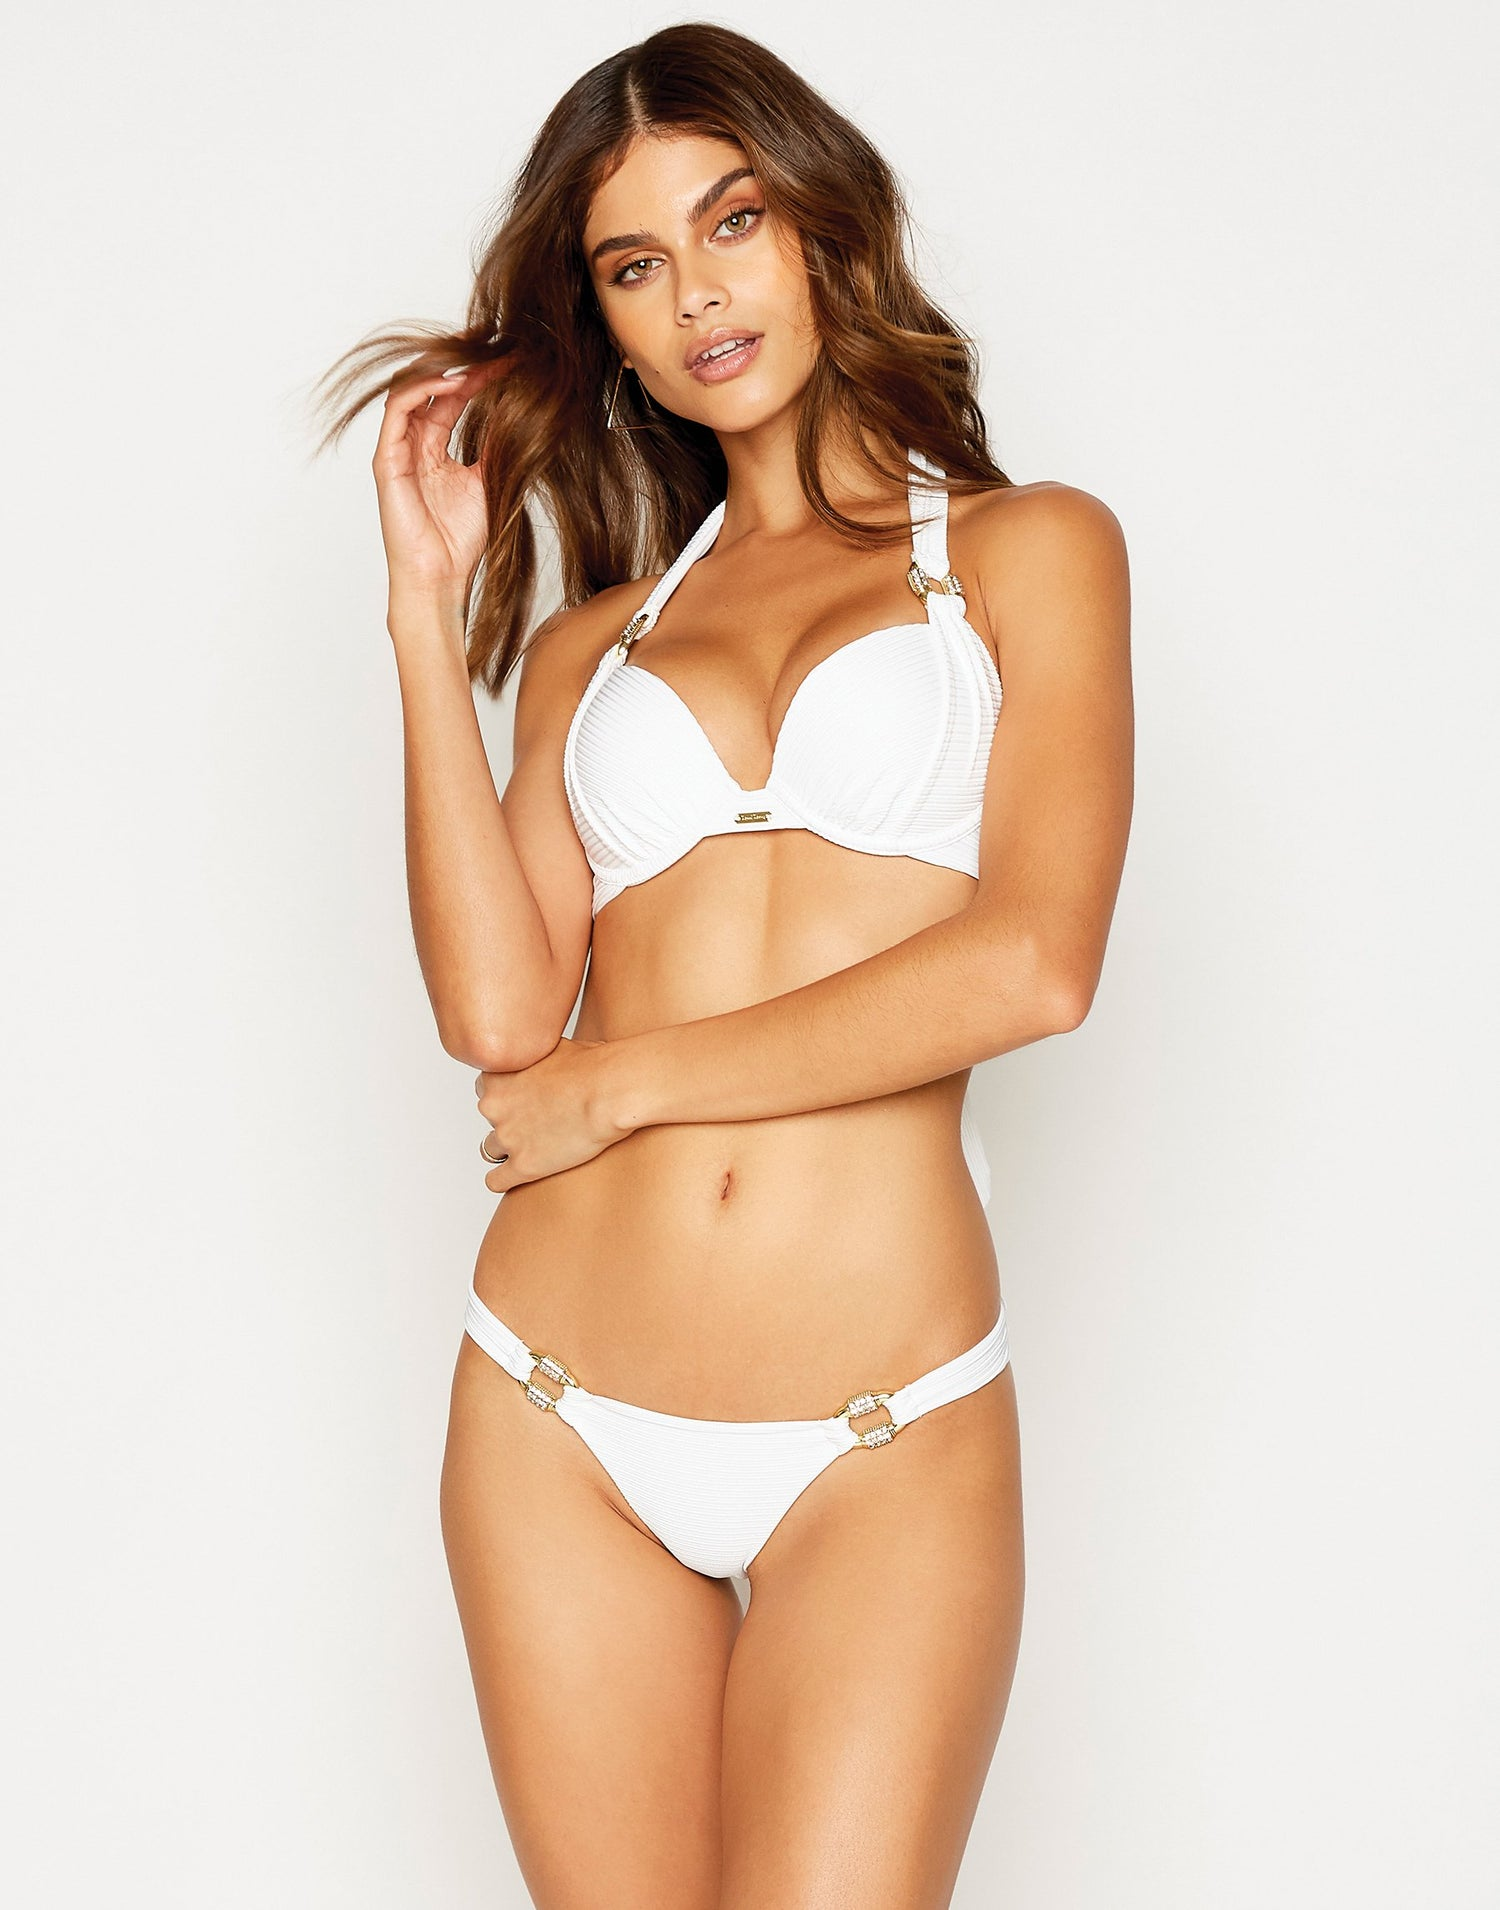 Madagascar Glam Skimpy Bikini Bottom in White Rib with Gold Hardware - front view